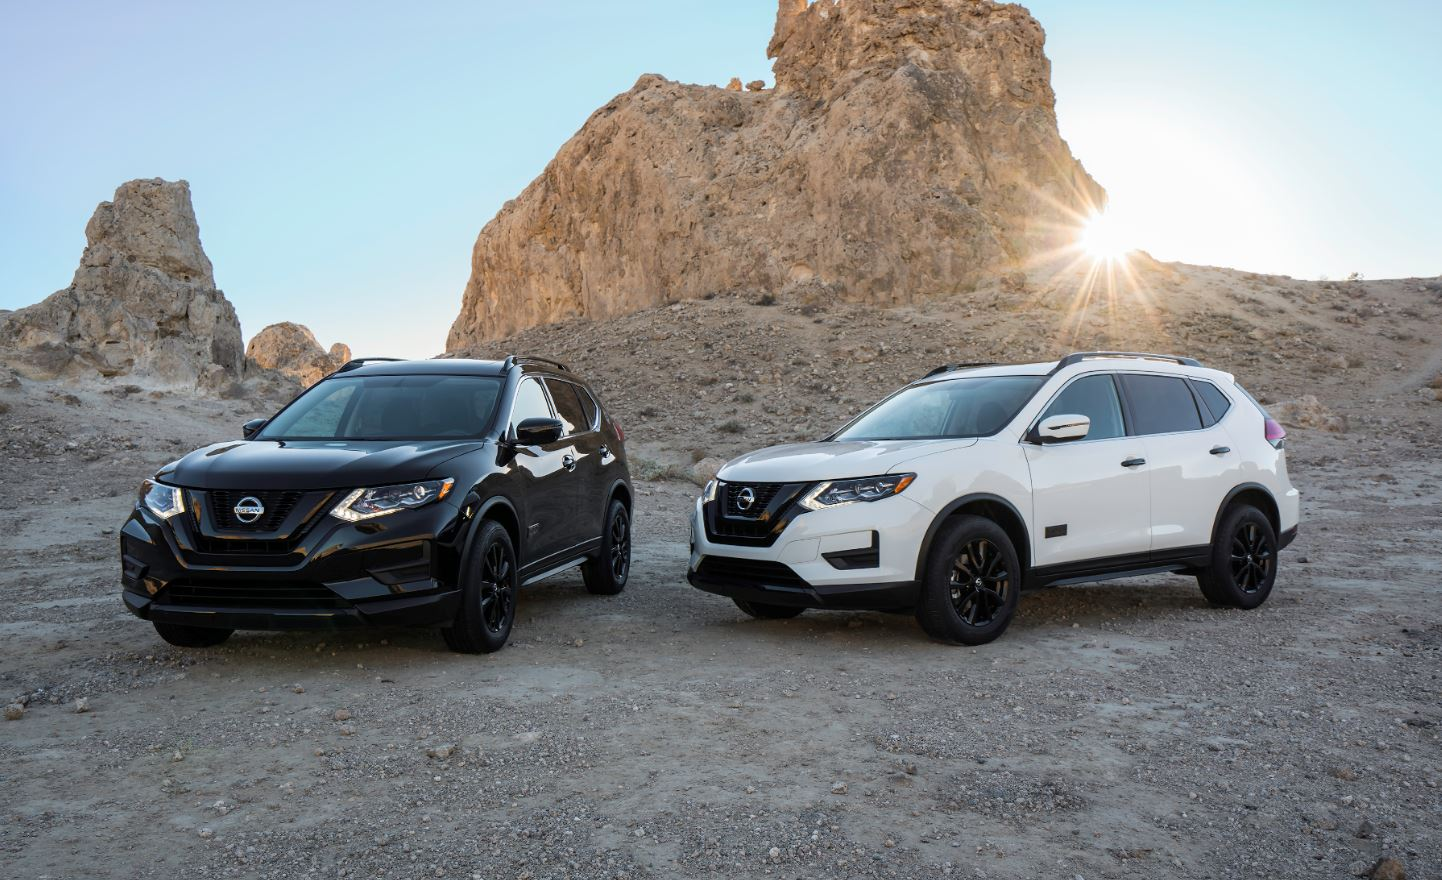 2017 Nissan Rogue: Rogue One Star Wars Limited Edition Will